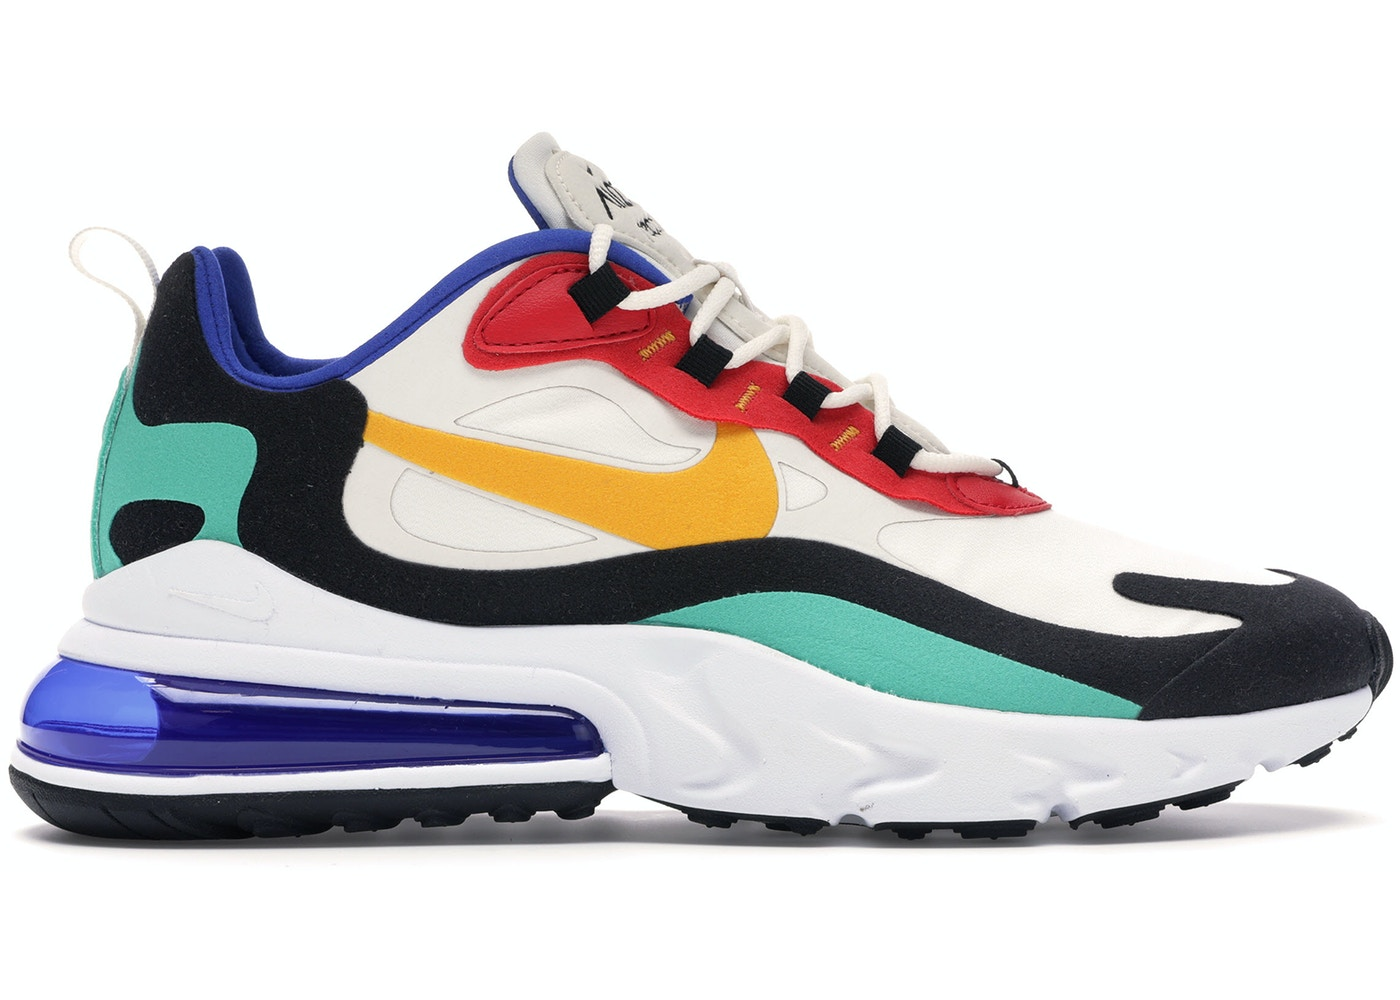 info for 48c64 b2b33 Air Max 270 React Bauhaus